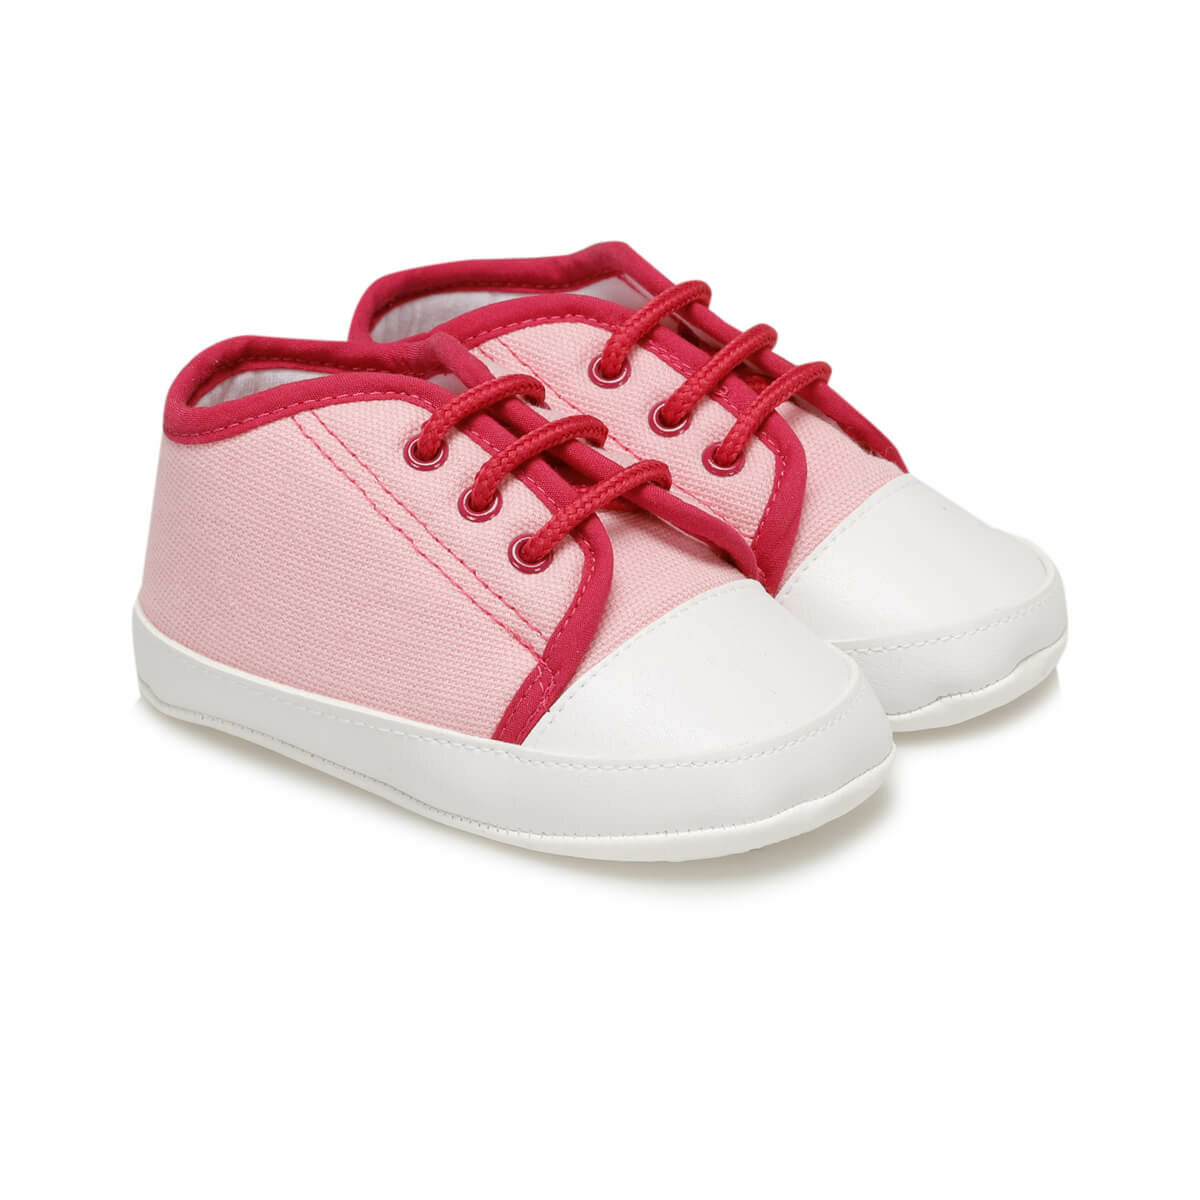 FLO 1271 Pink Female Child Shoes MINITTO